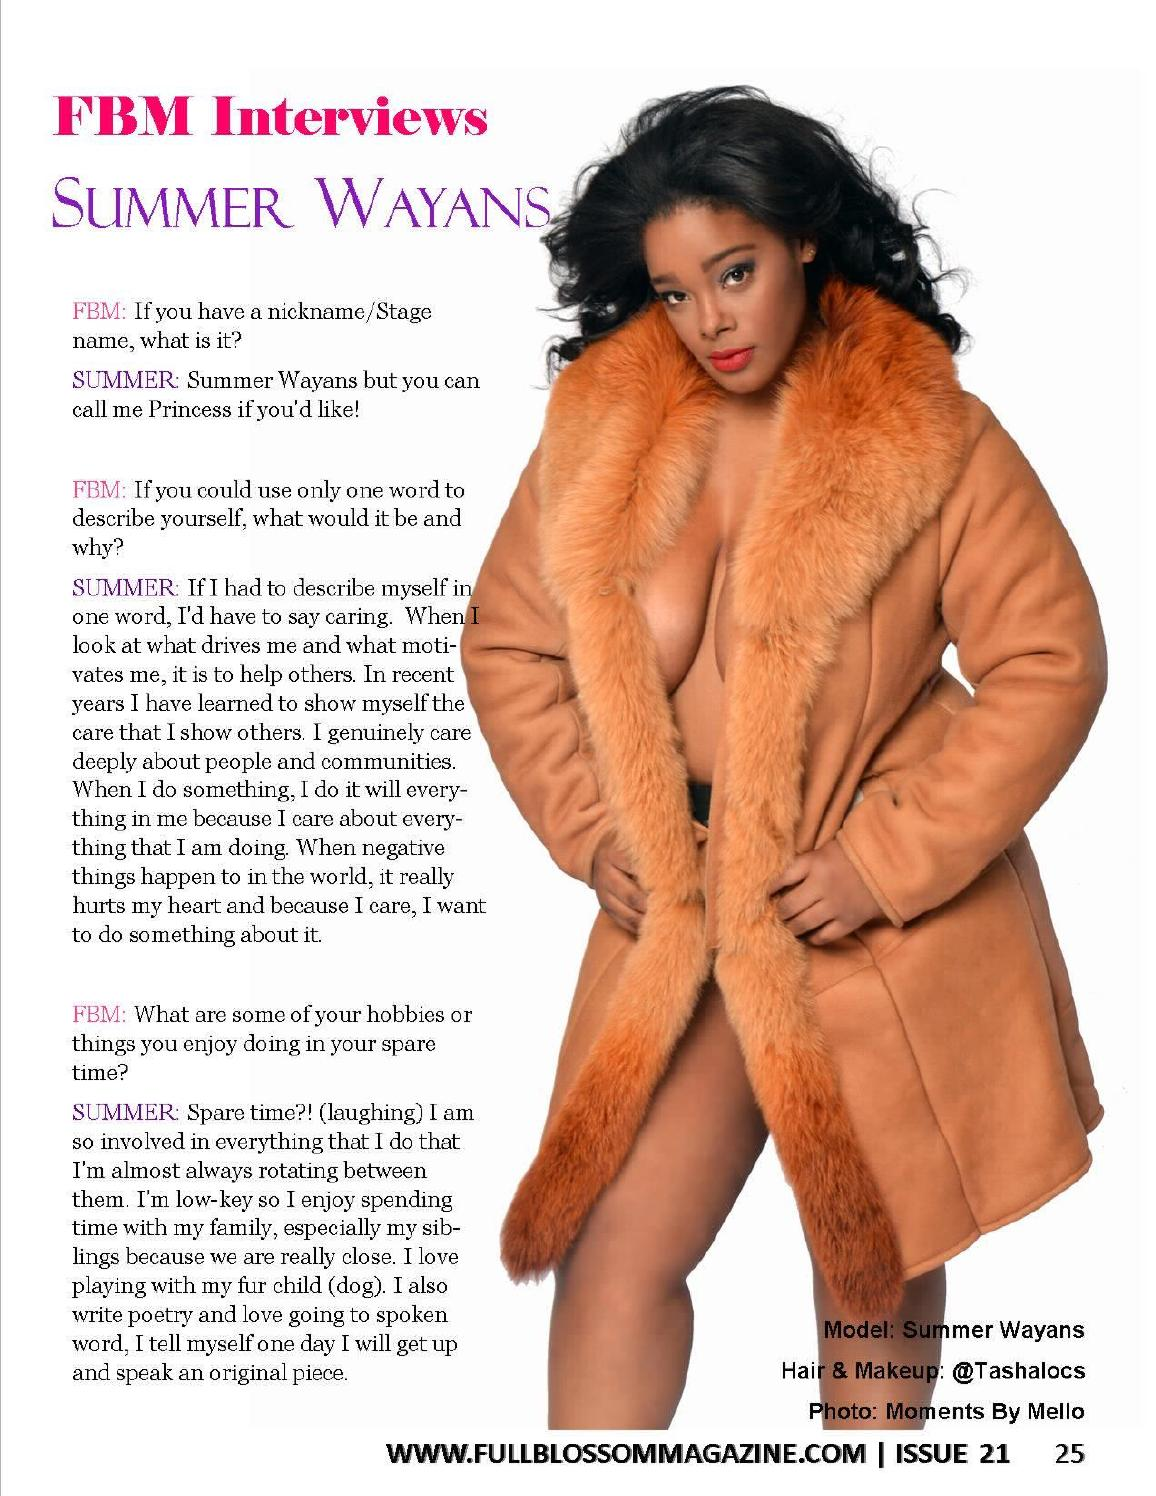 Summer Wayans Model Actress Philanth